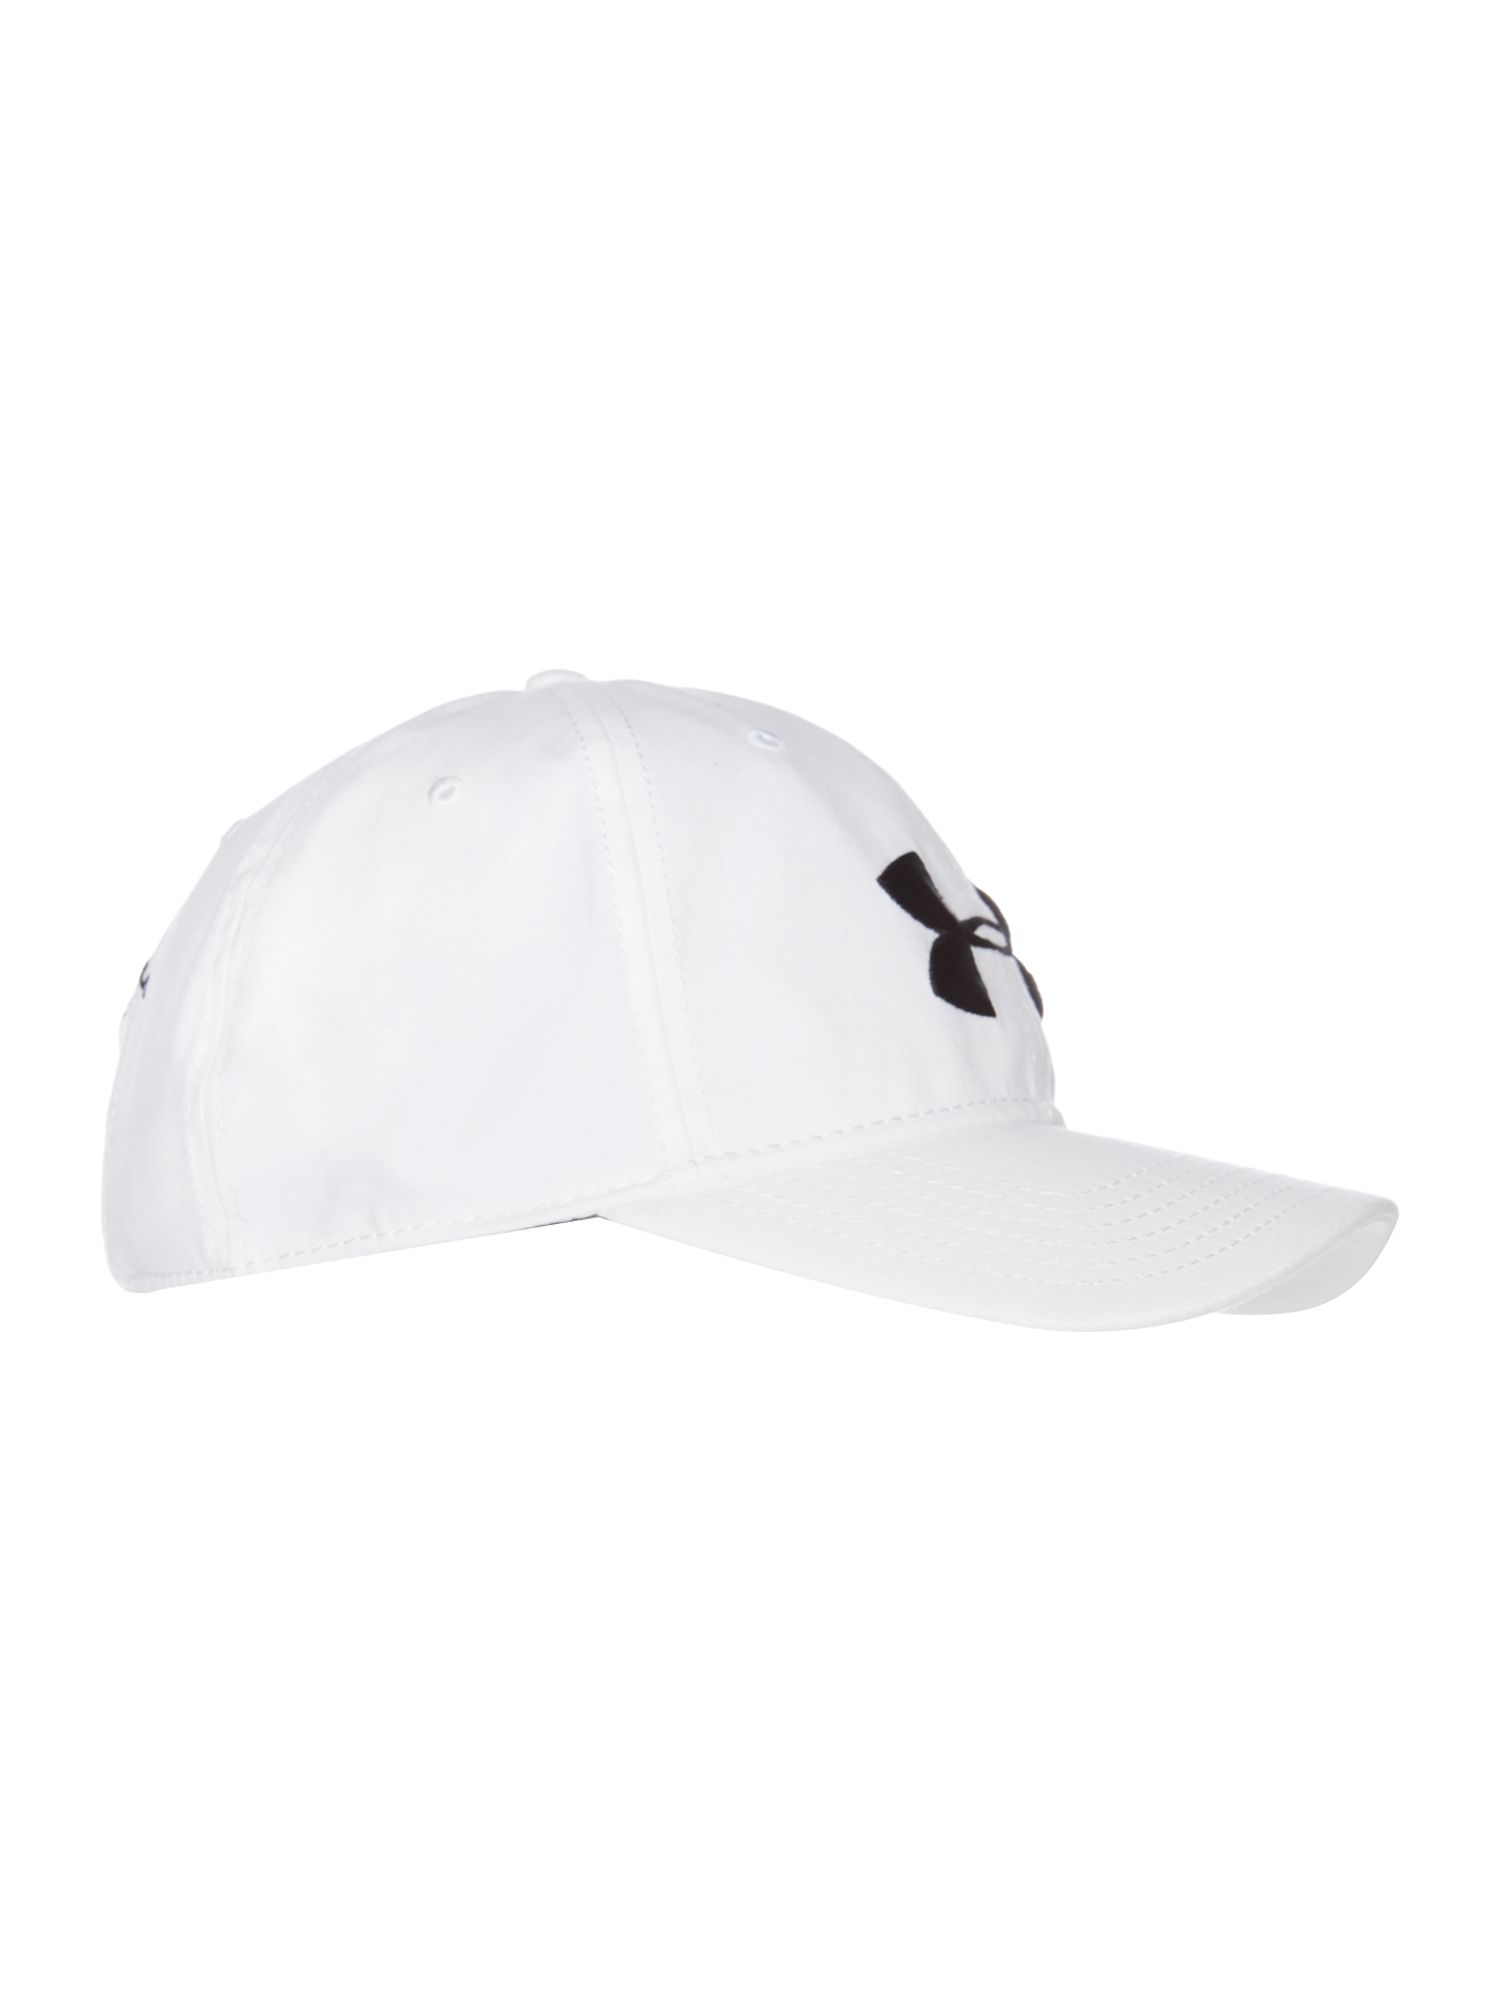 Charged cotton adjustable cap